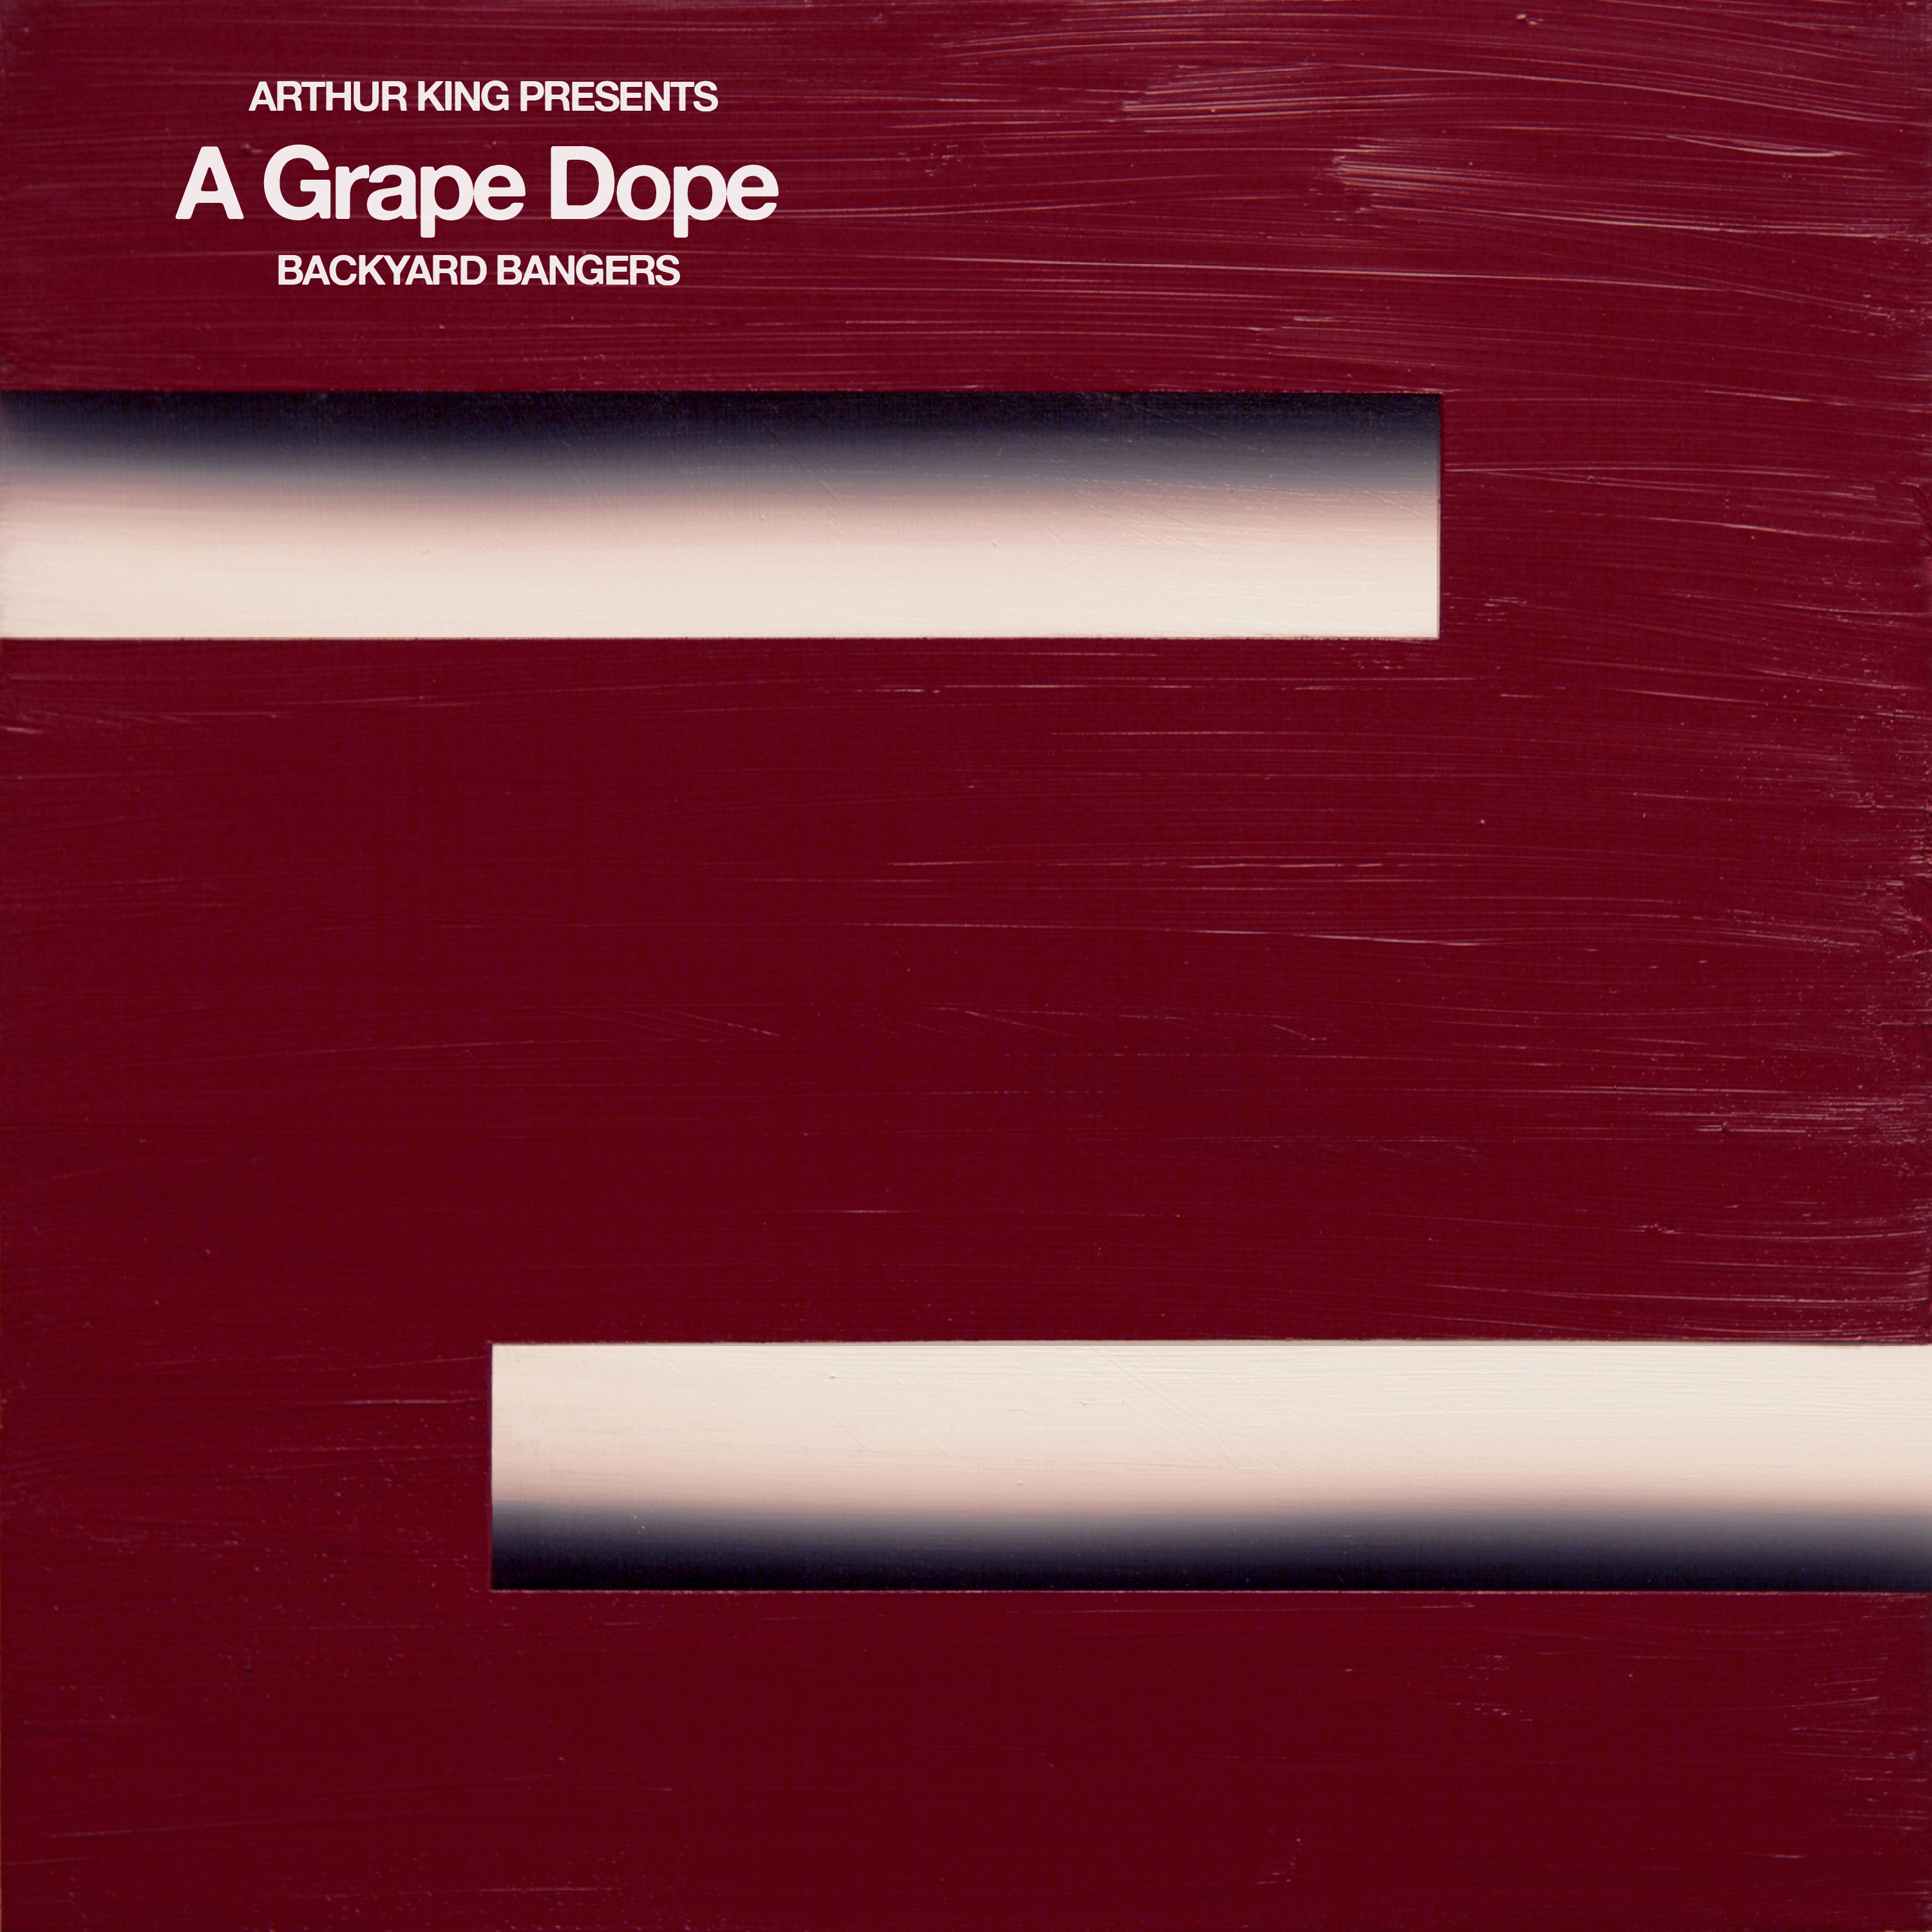 A Grape Dope - Arthur King Presents A Grape Dope: Backyard Bangers - Digital